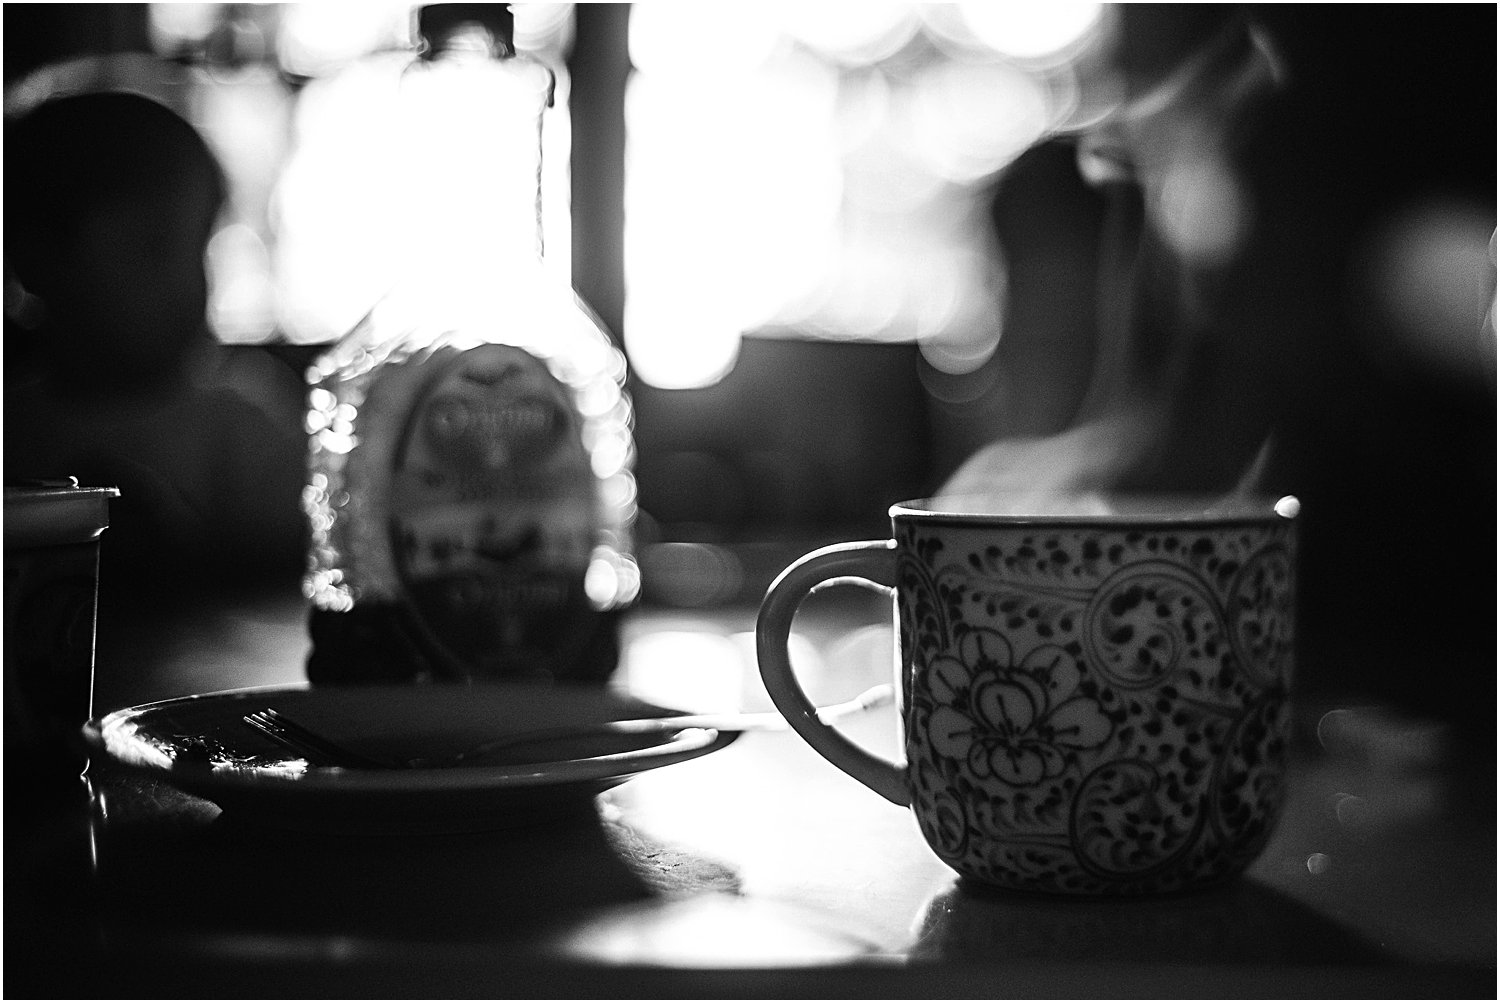 freelensed coffee steam